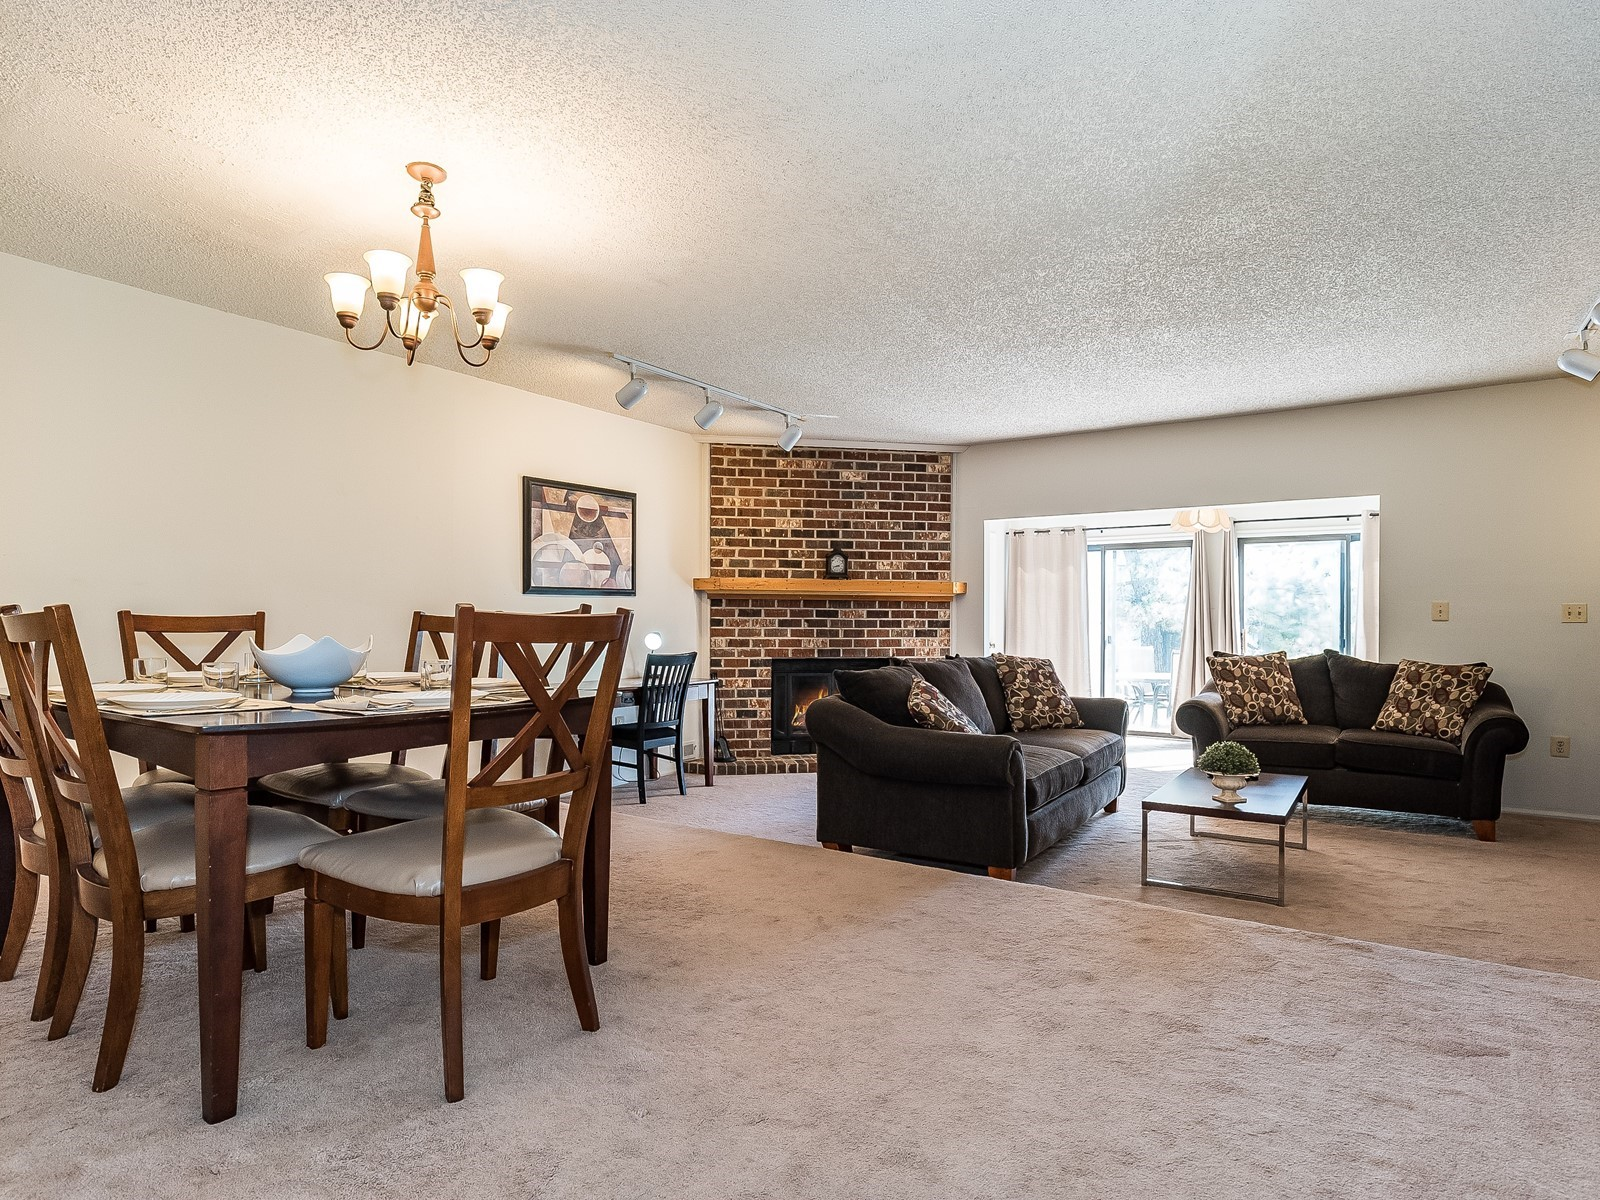 Piscataway 147 Furnished housing 6 person dining table and view into spacious living room